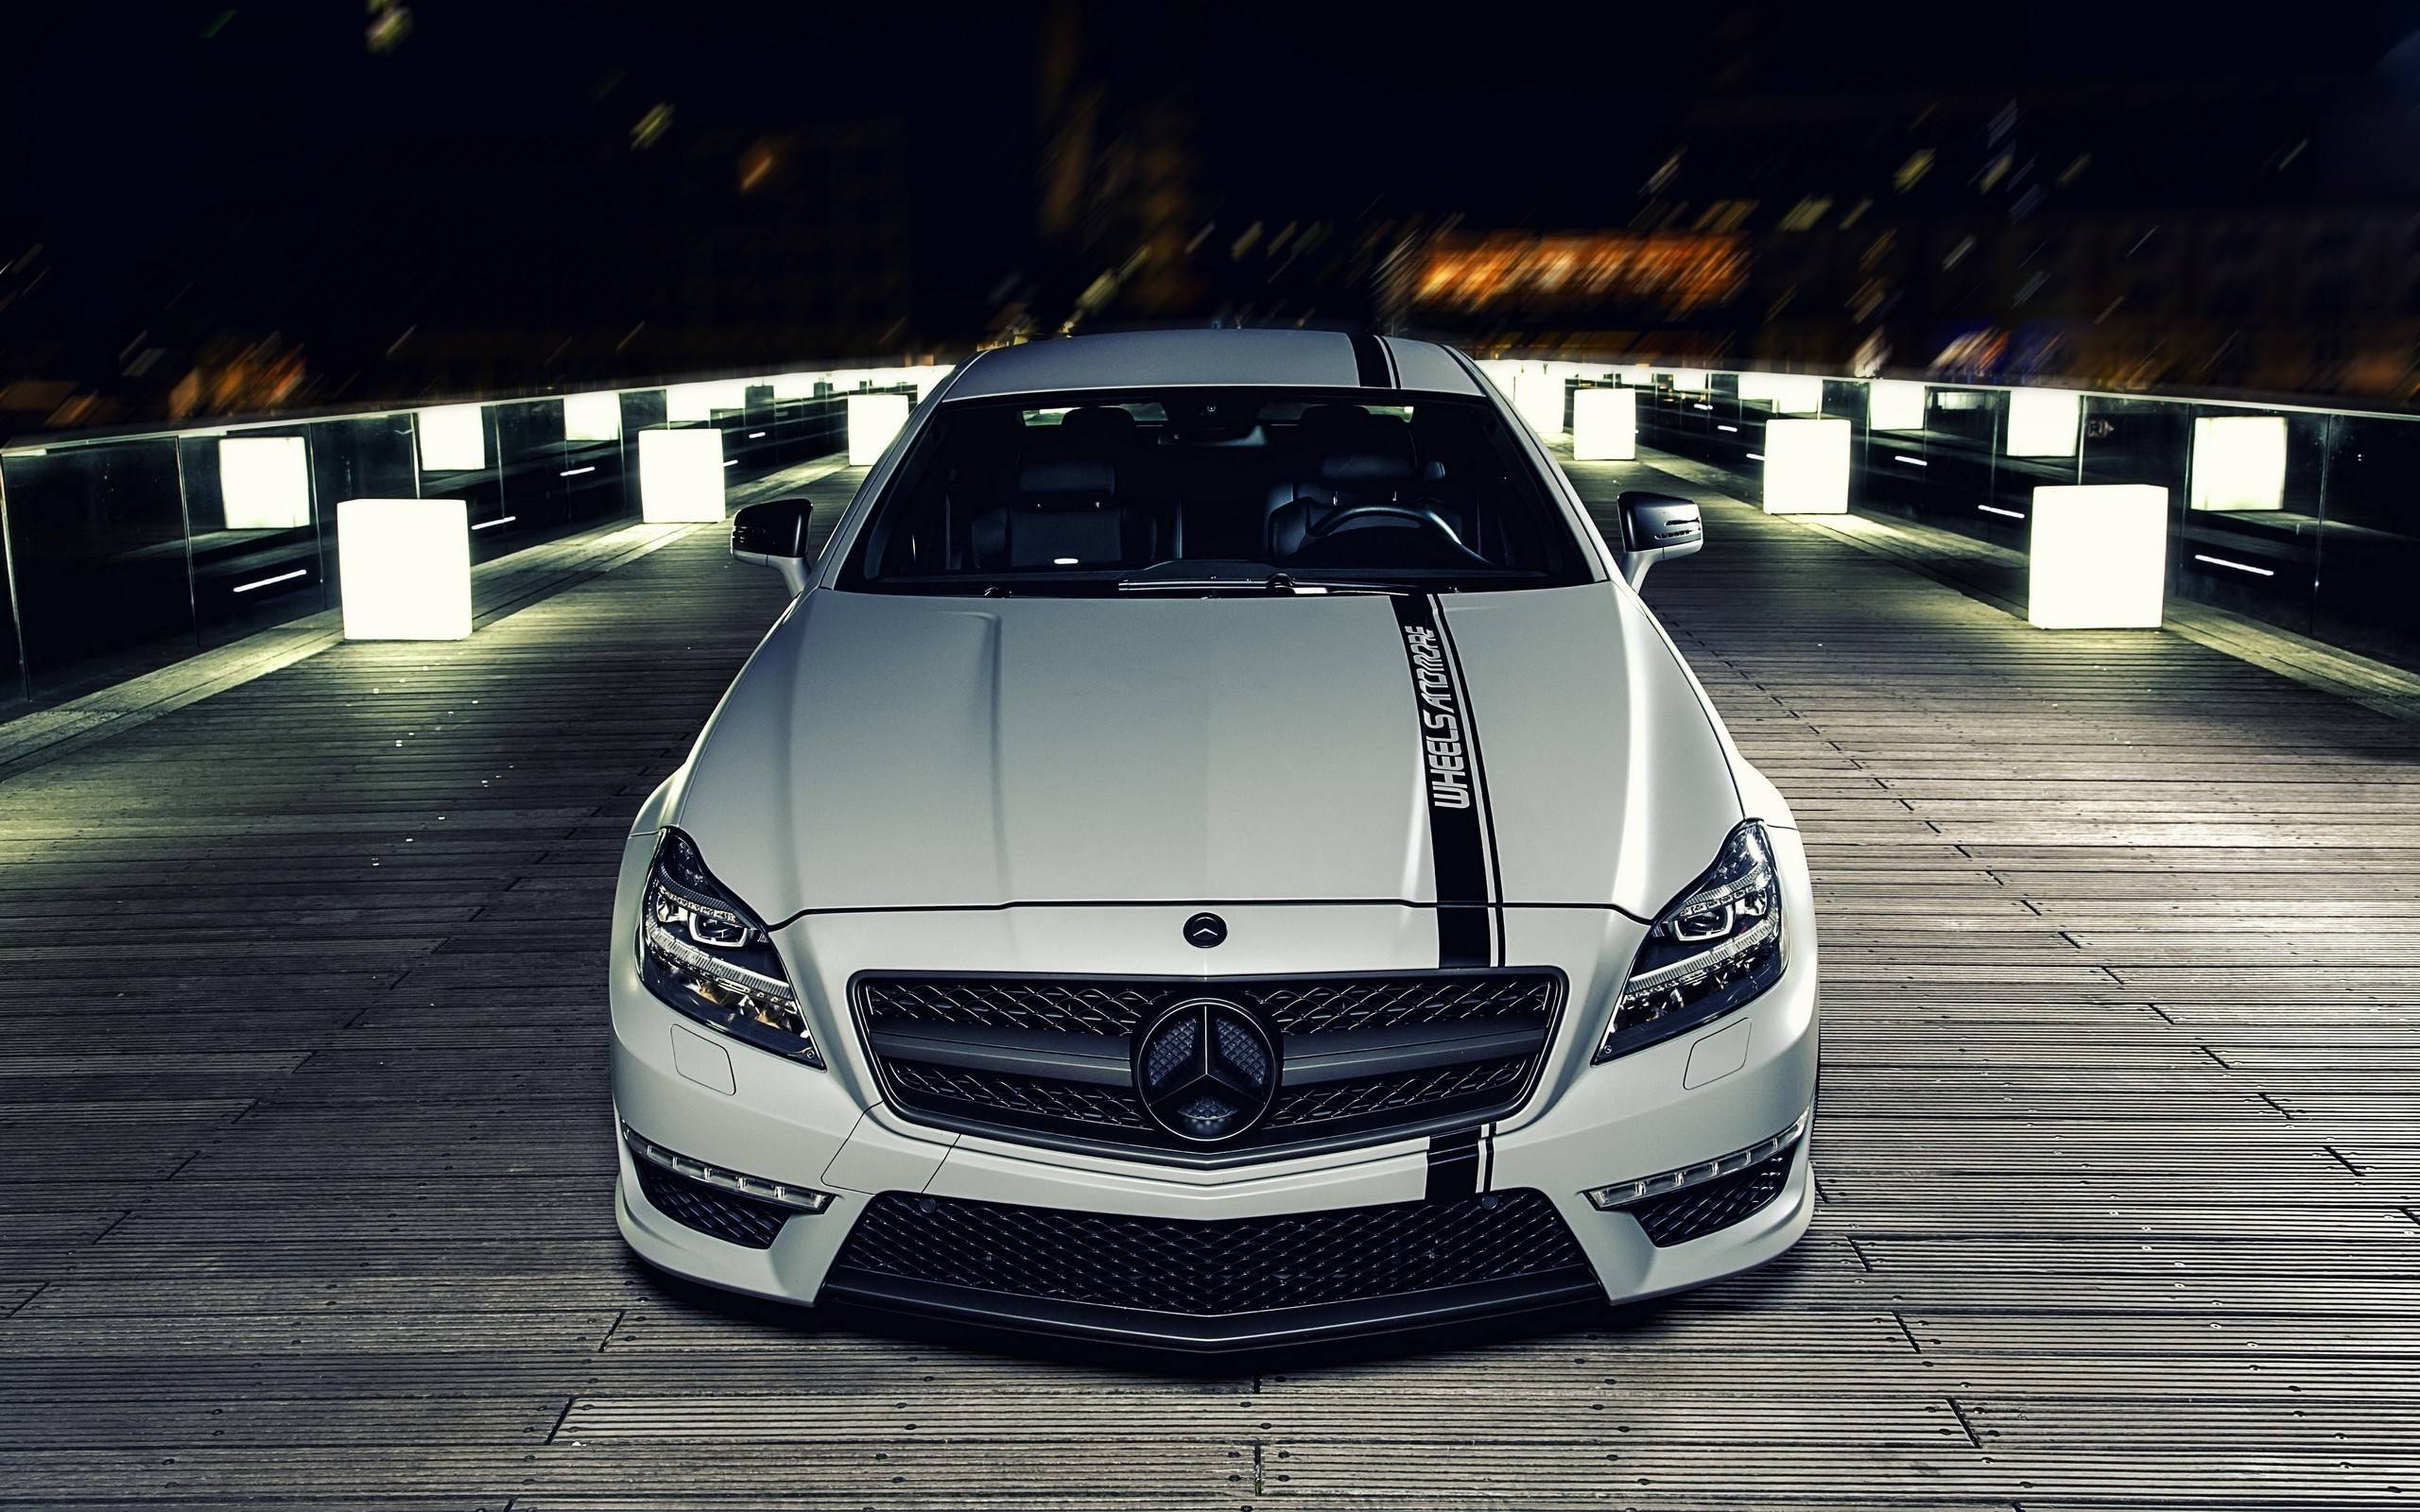 Mercedes Benz AMG Wallpapers 2560x1600